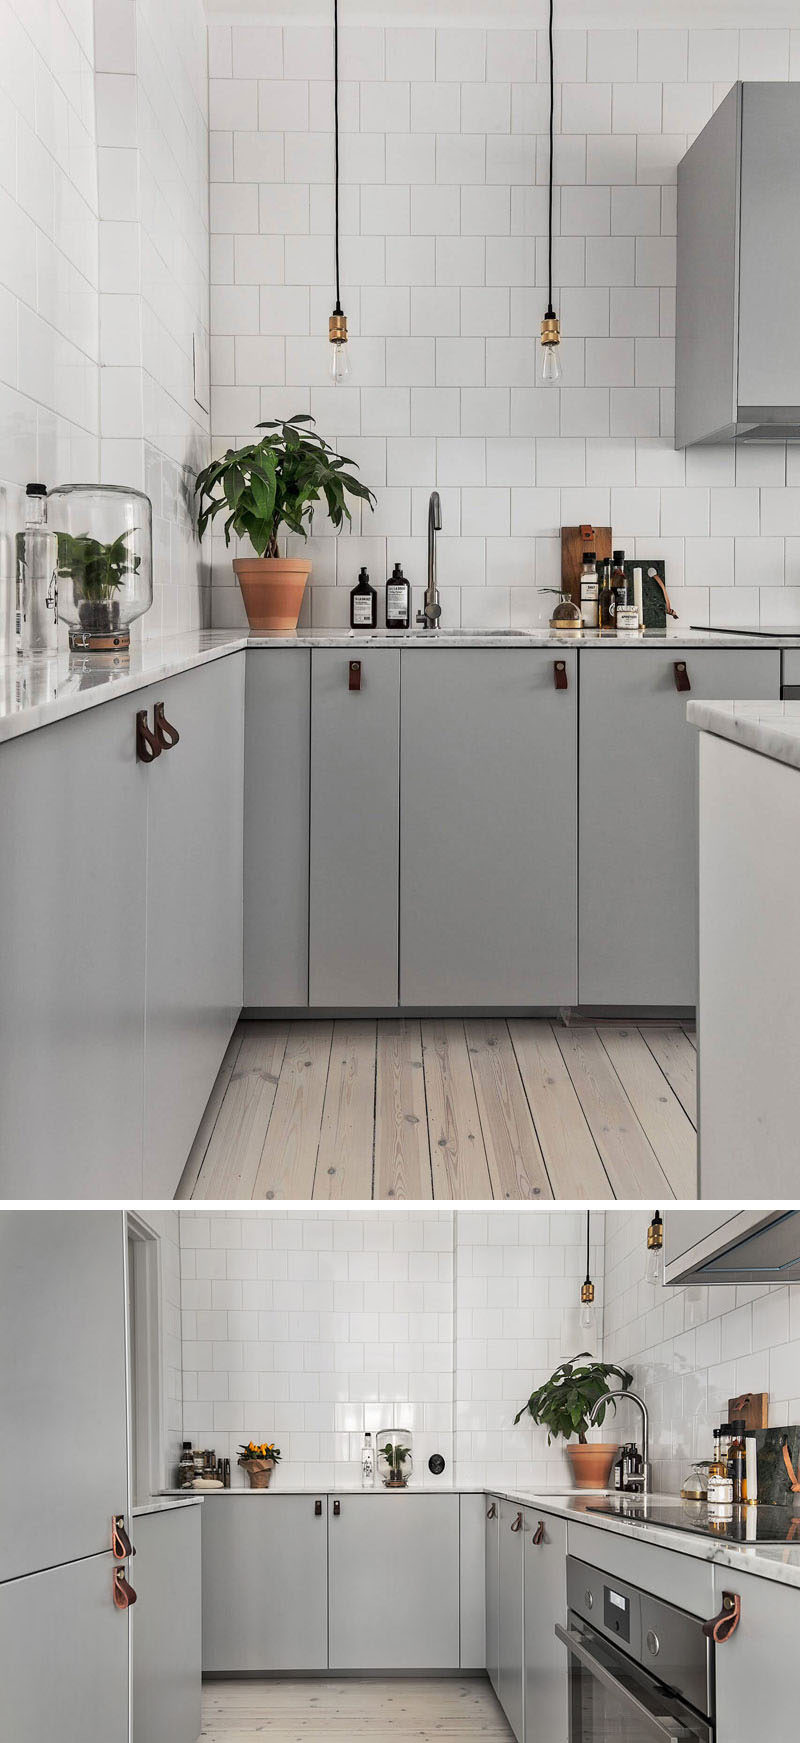 12 Examples Of Sophisticated Gray Kitchen Cabinets // Minimalist, gray cabinets have been paired with white tiles and leather pulls in this kitchen.